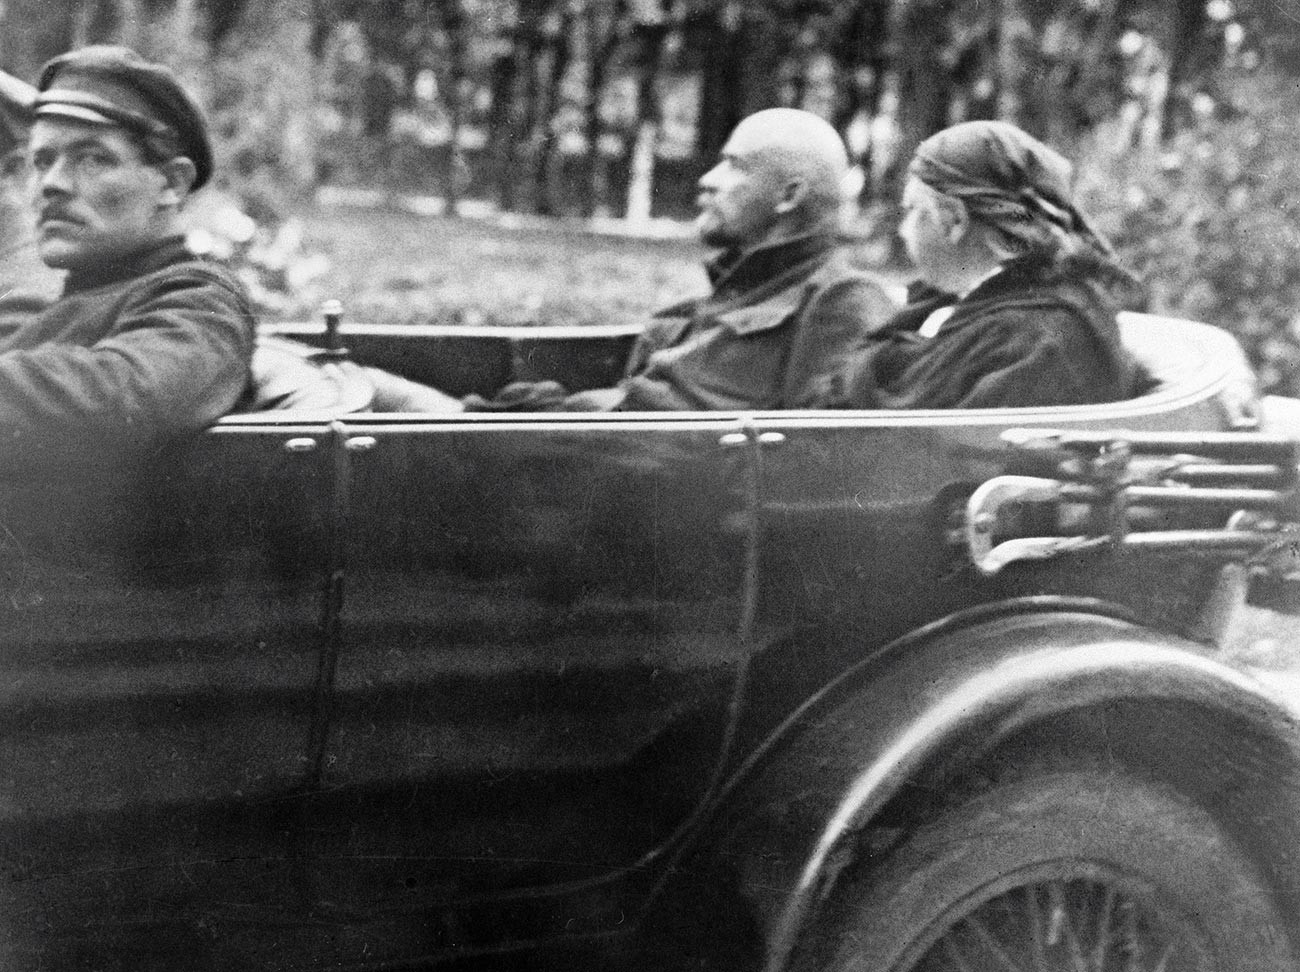 Lenin and his wife Nadezhda Krupskaya riding around in their Gorki estate near Moscow